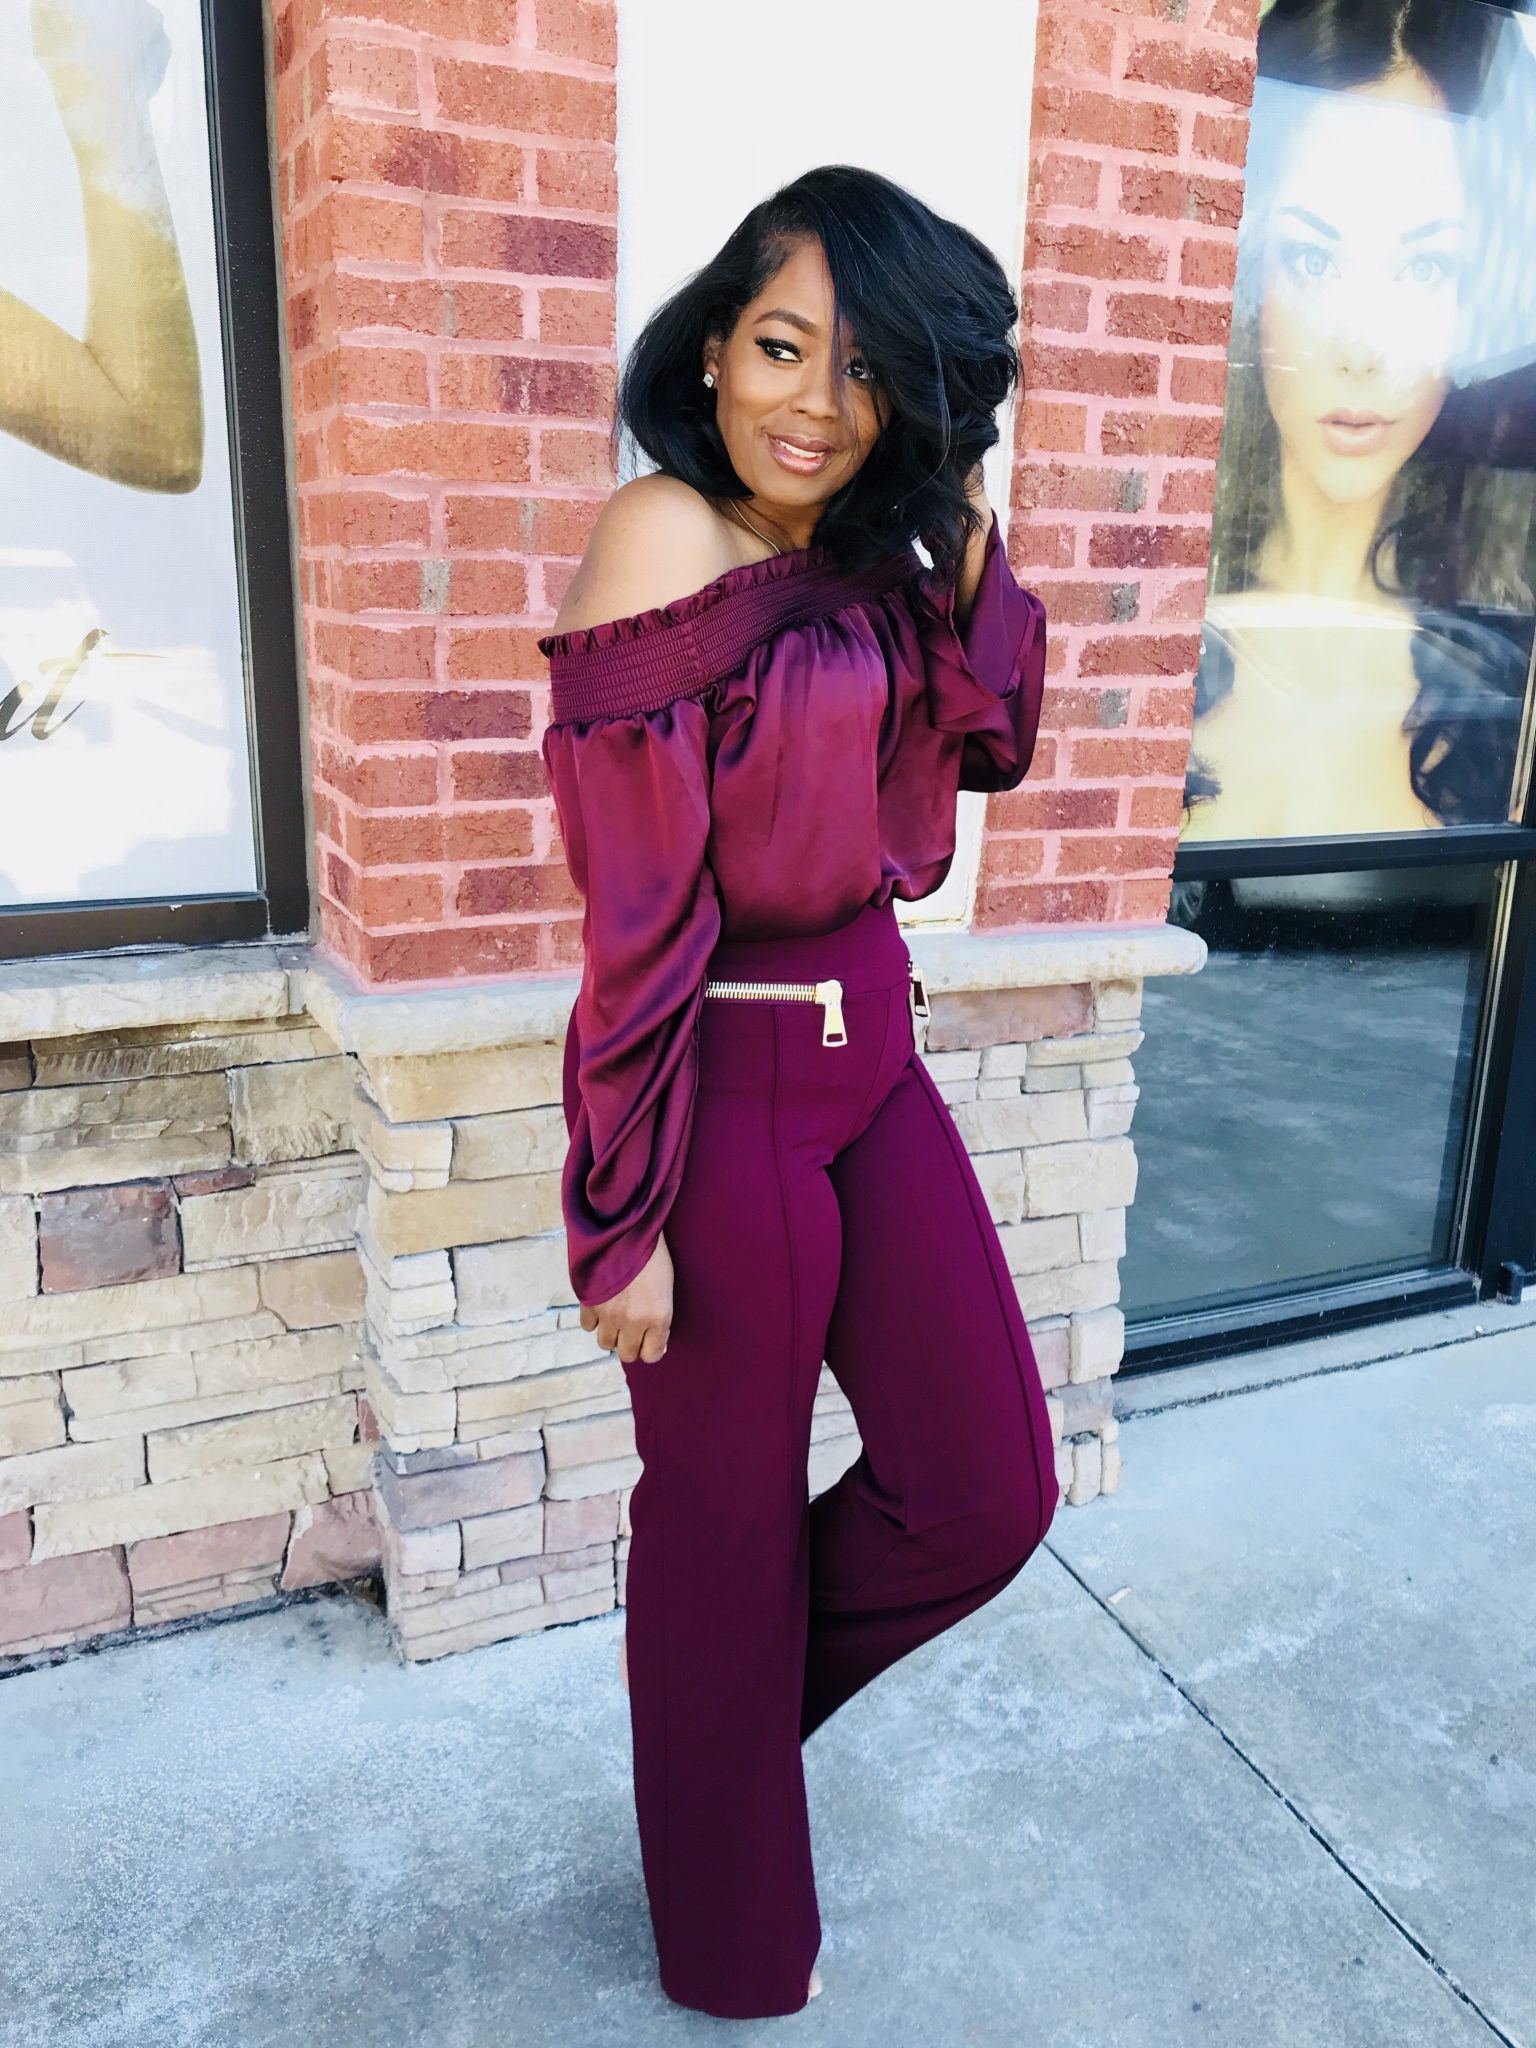 My Style: Over Sized Zipper Pants